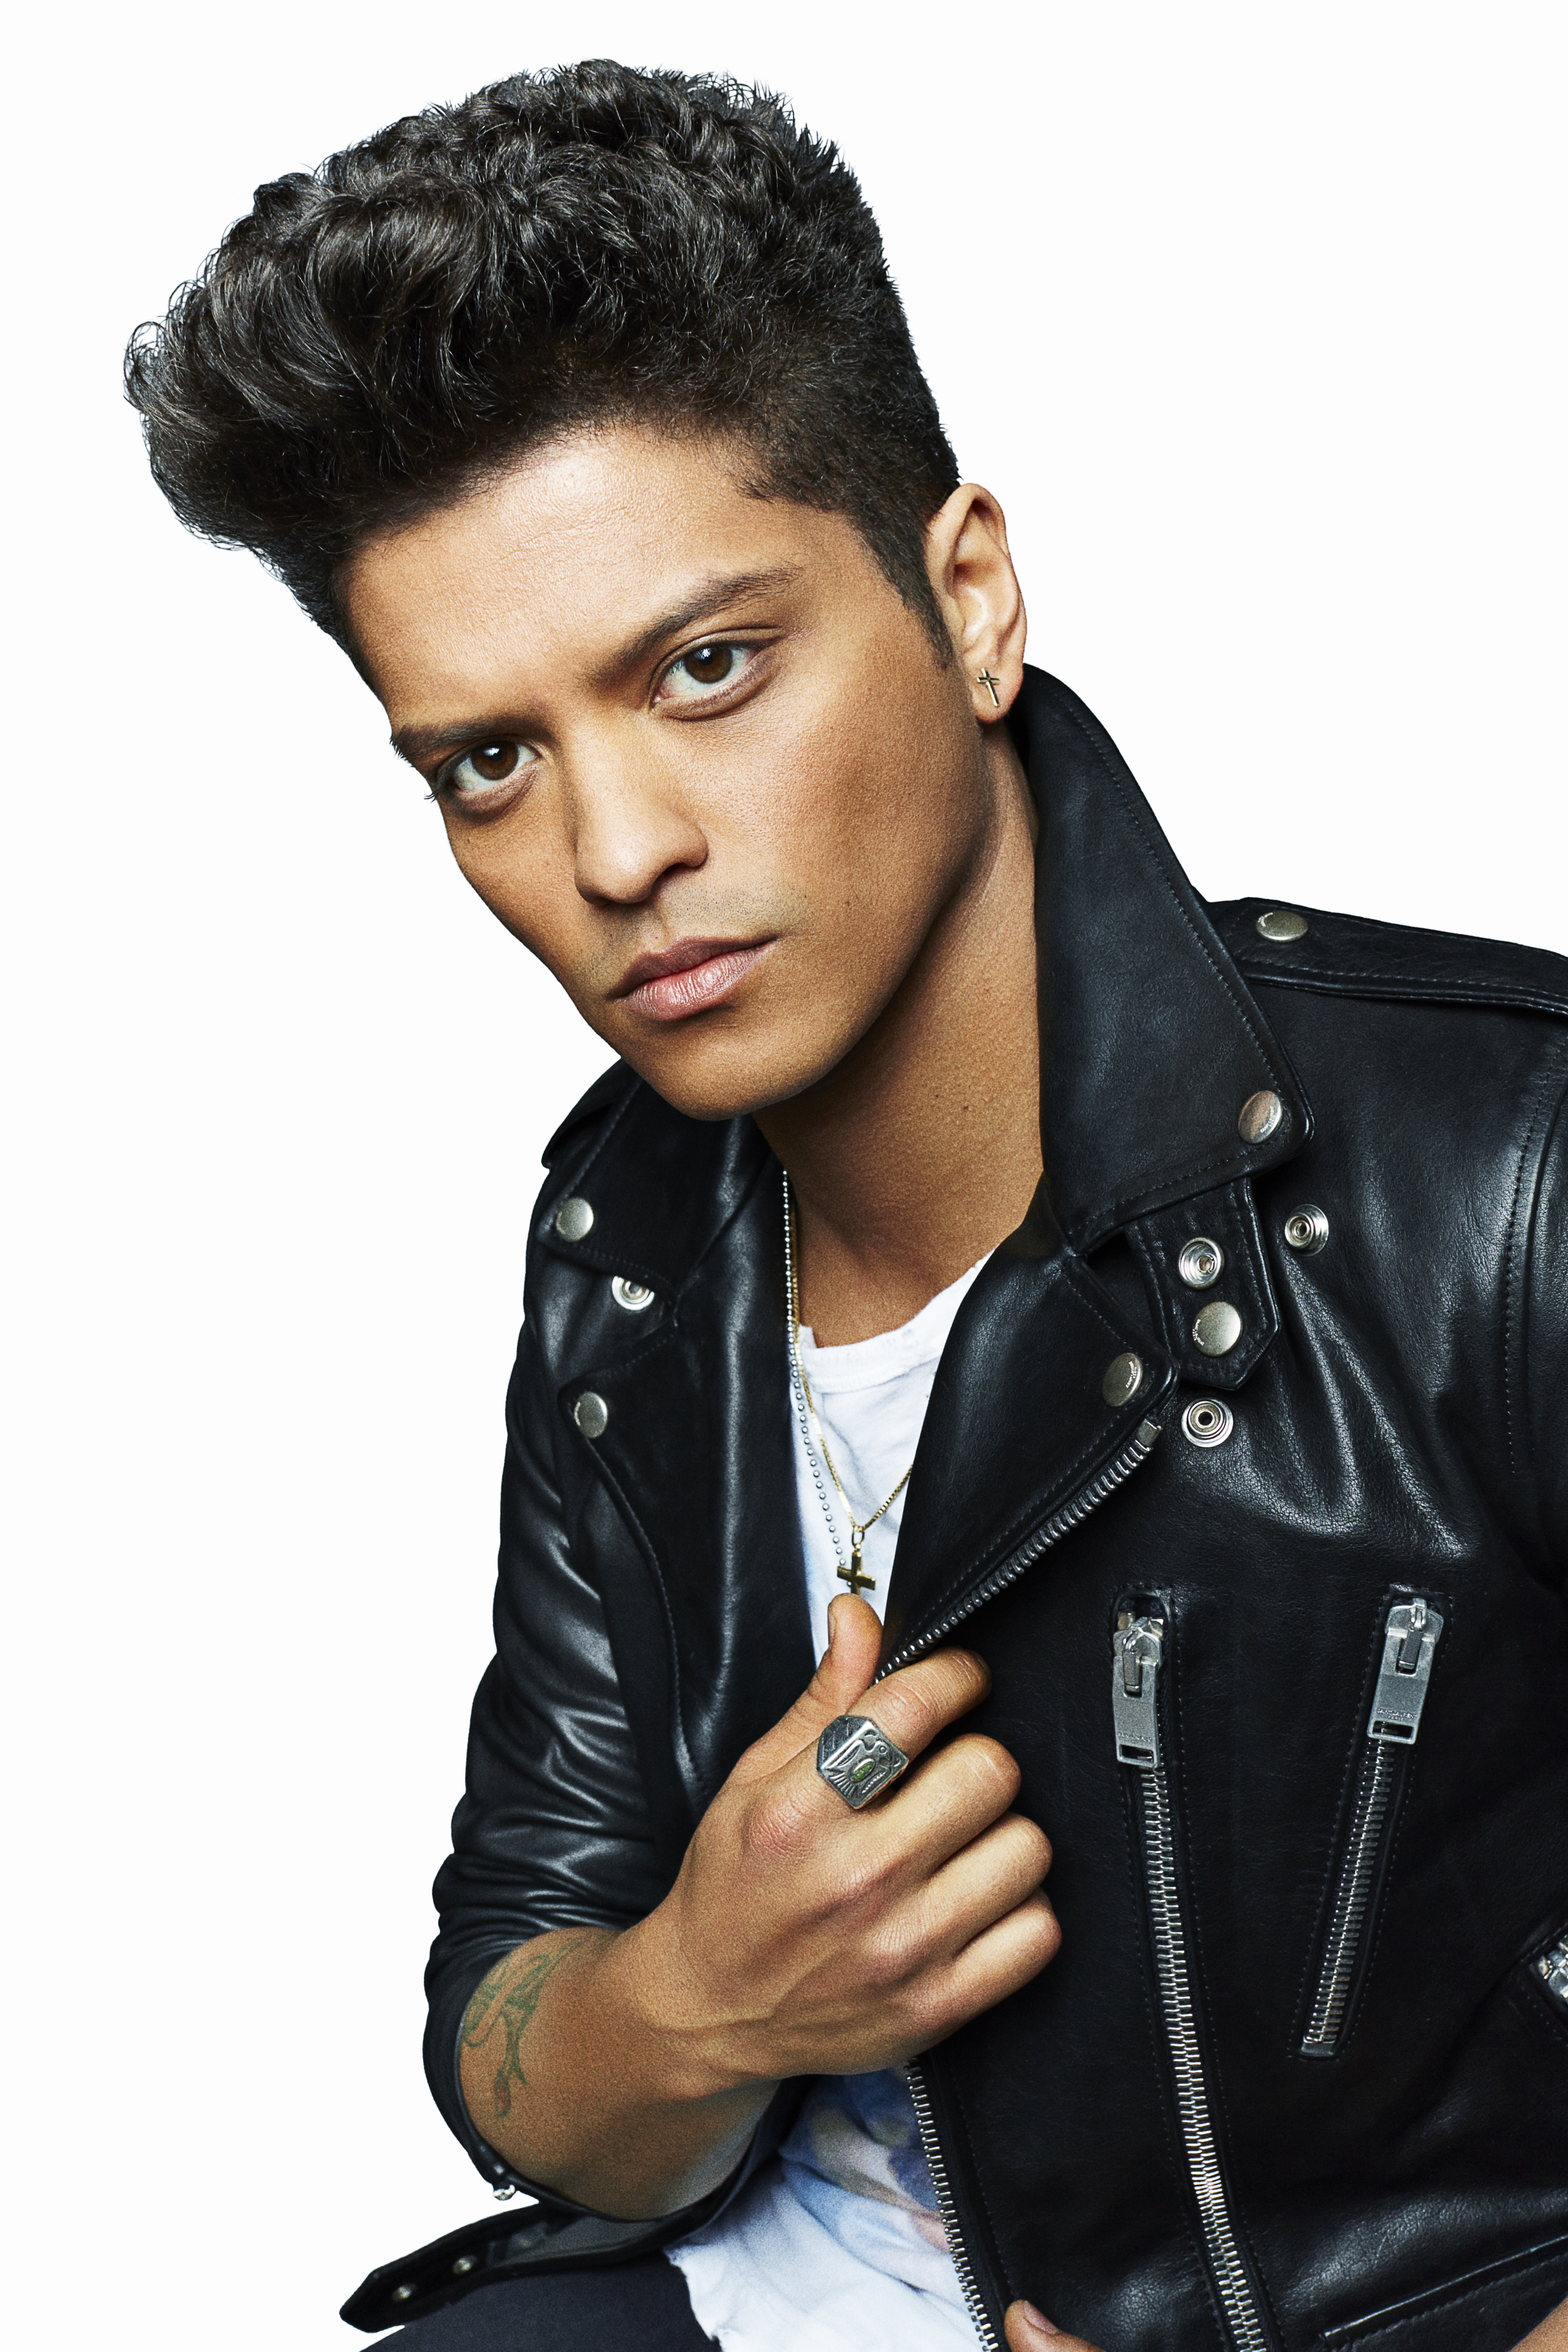 Bruno Mars Iphone HD Wallpaper